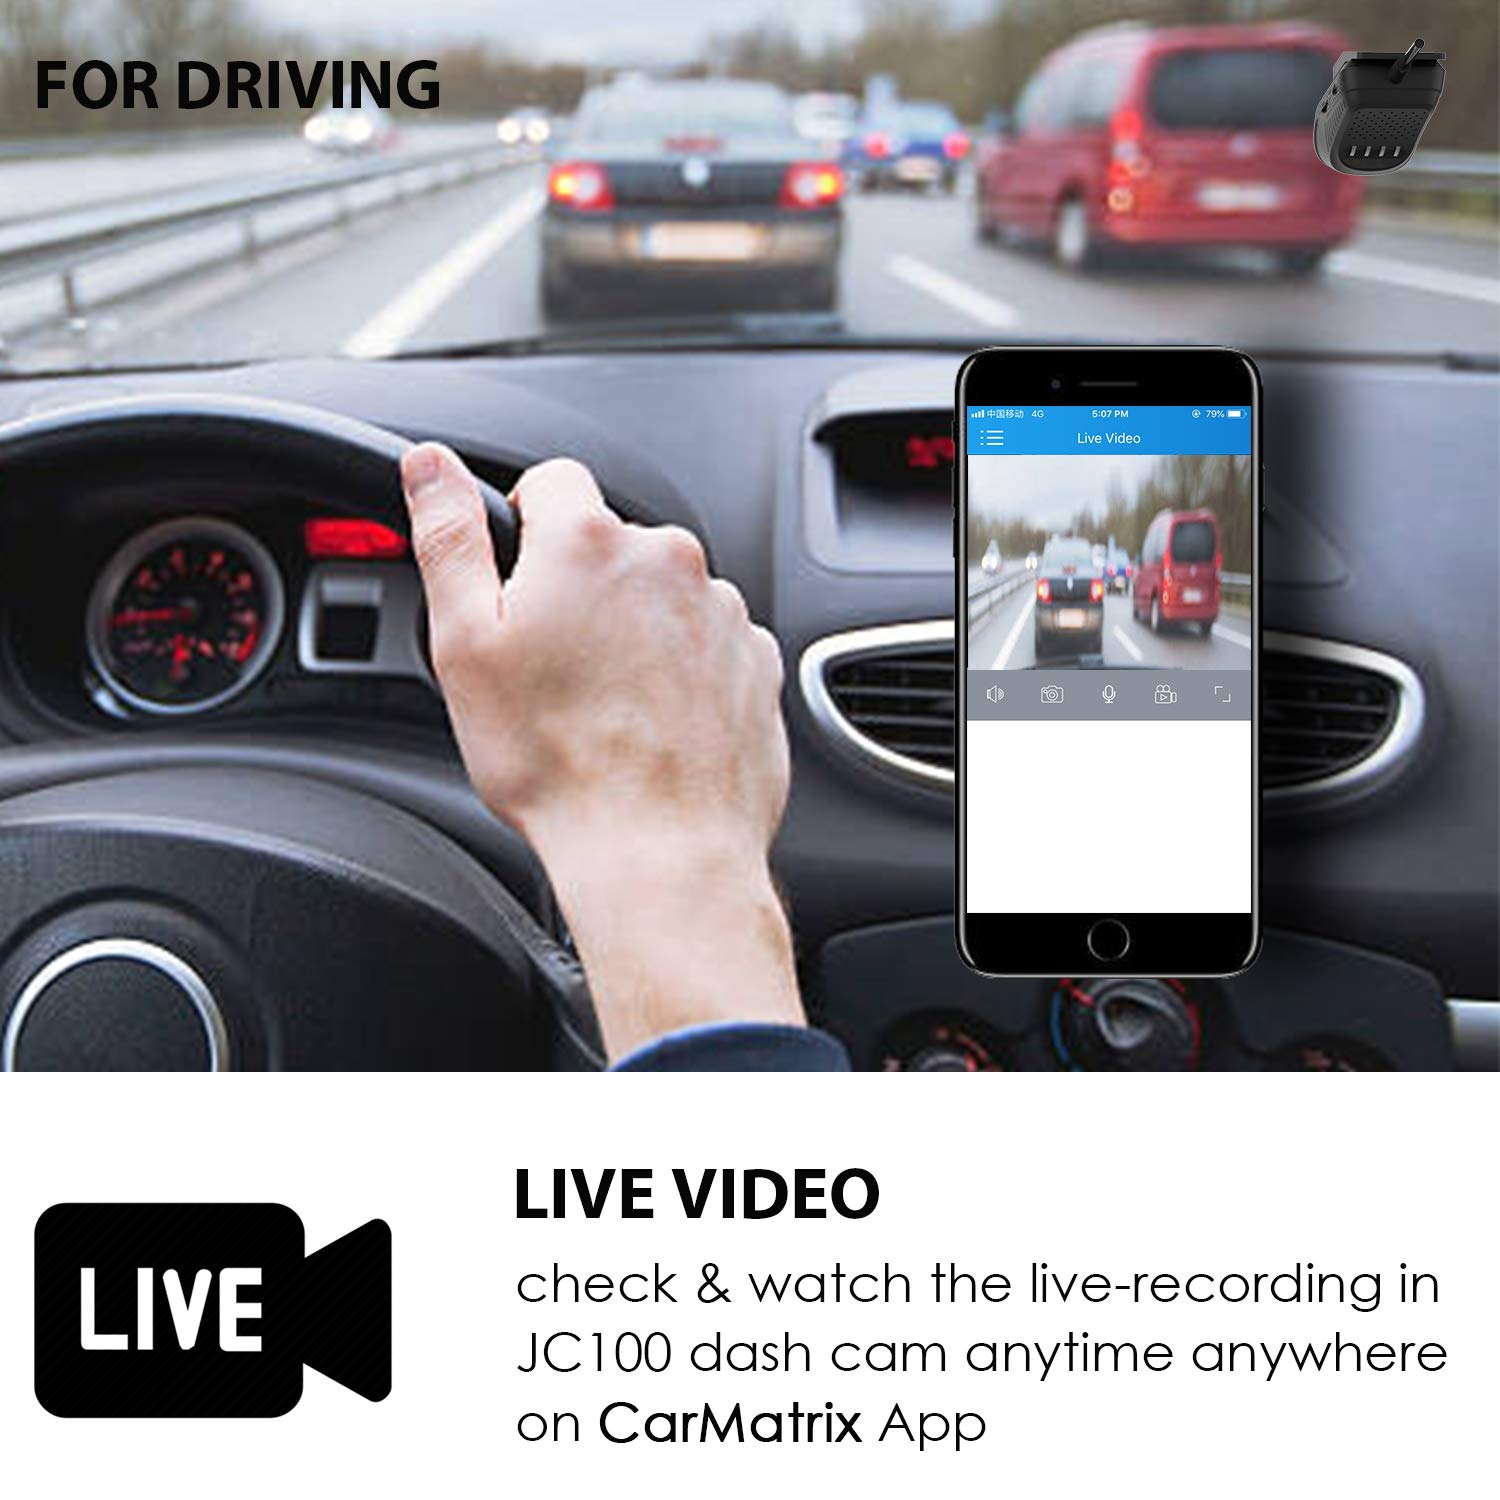 Dual Dash Cam, Toptellite 3G WiFi Dash Camera with Remote Live Video for Car 1080P Night Vision Front and Inward Camera with Built-In GPS, G-sensor, Loop Recording, Vibration Alarm – Free 16GB TF Card